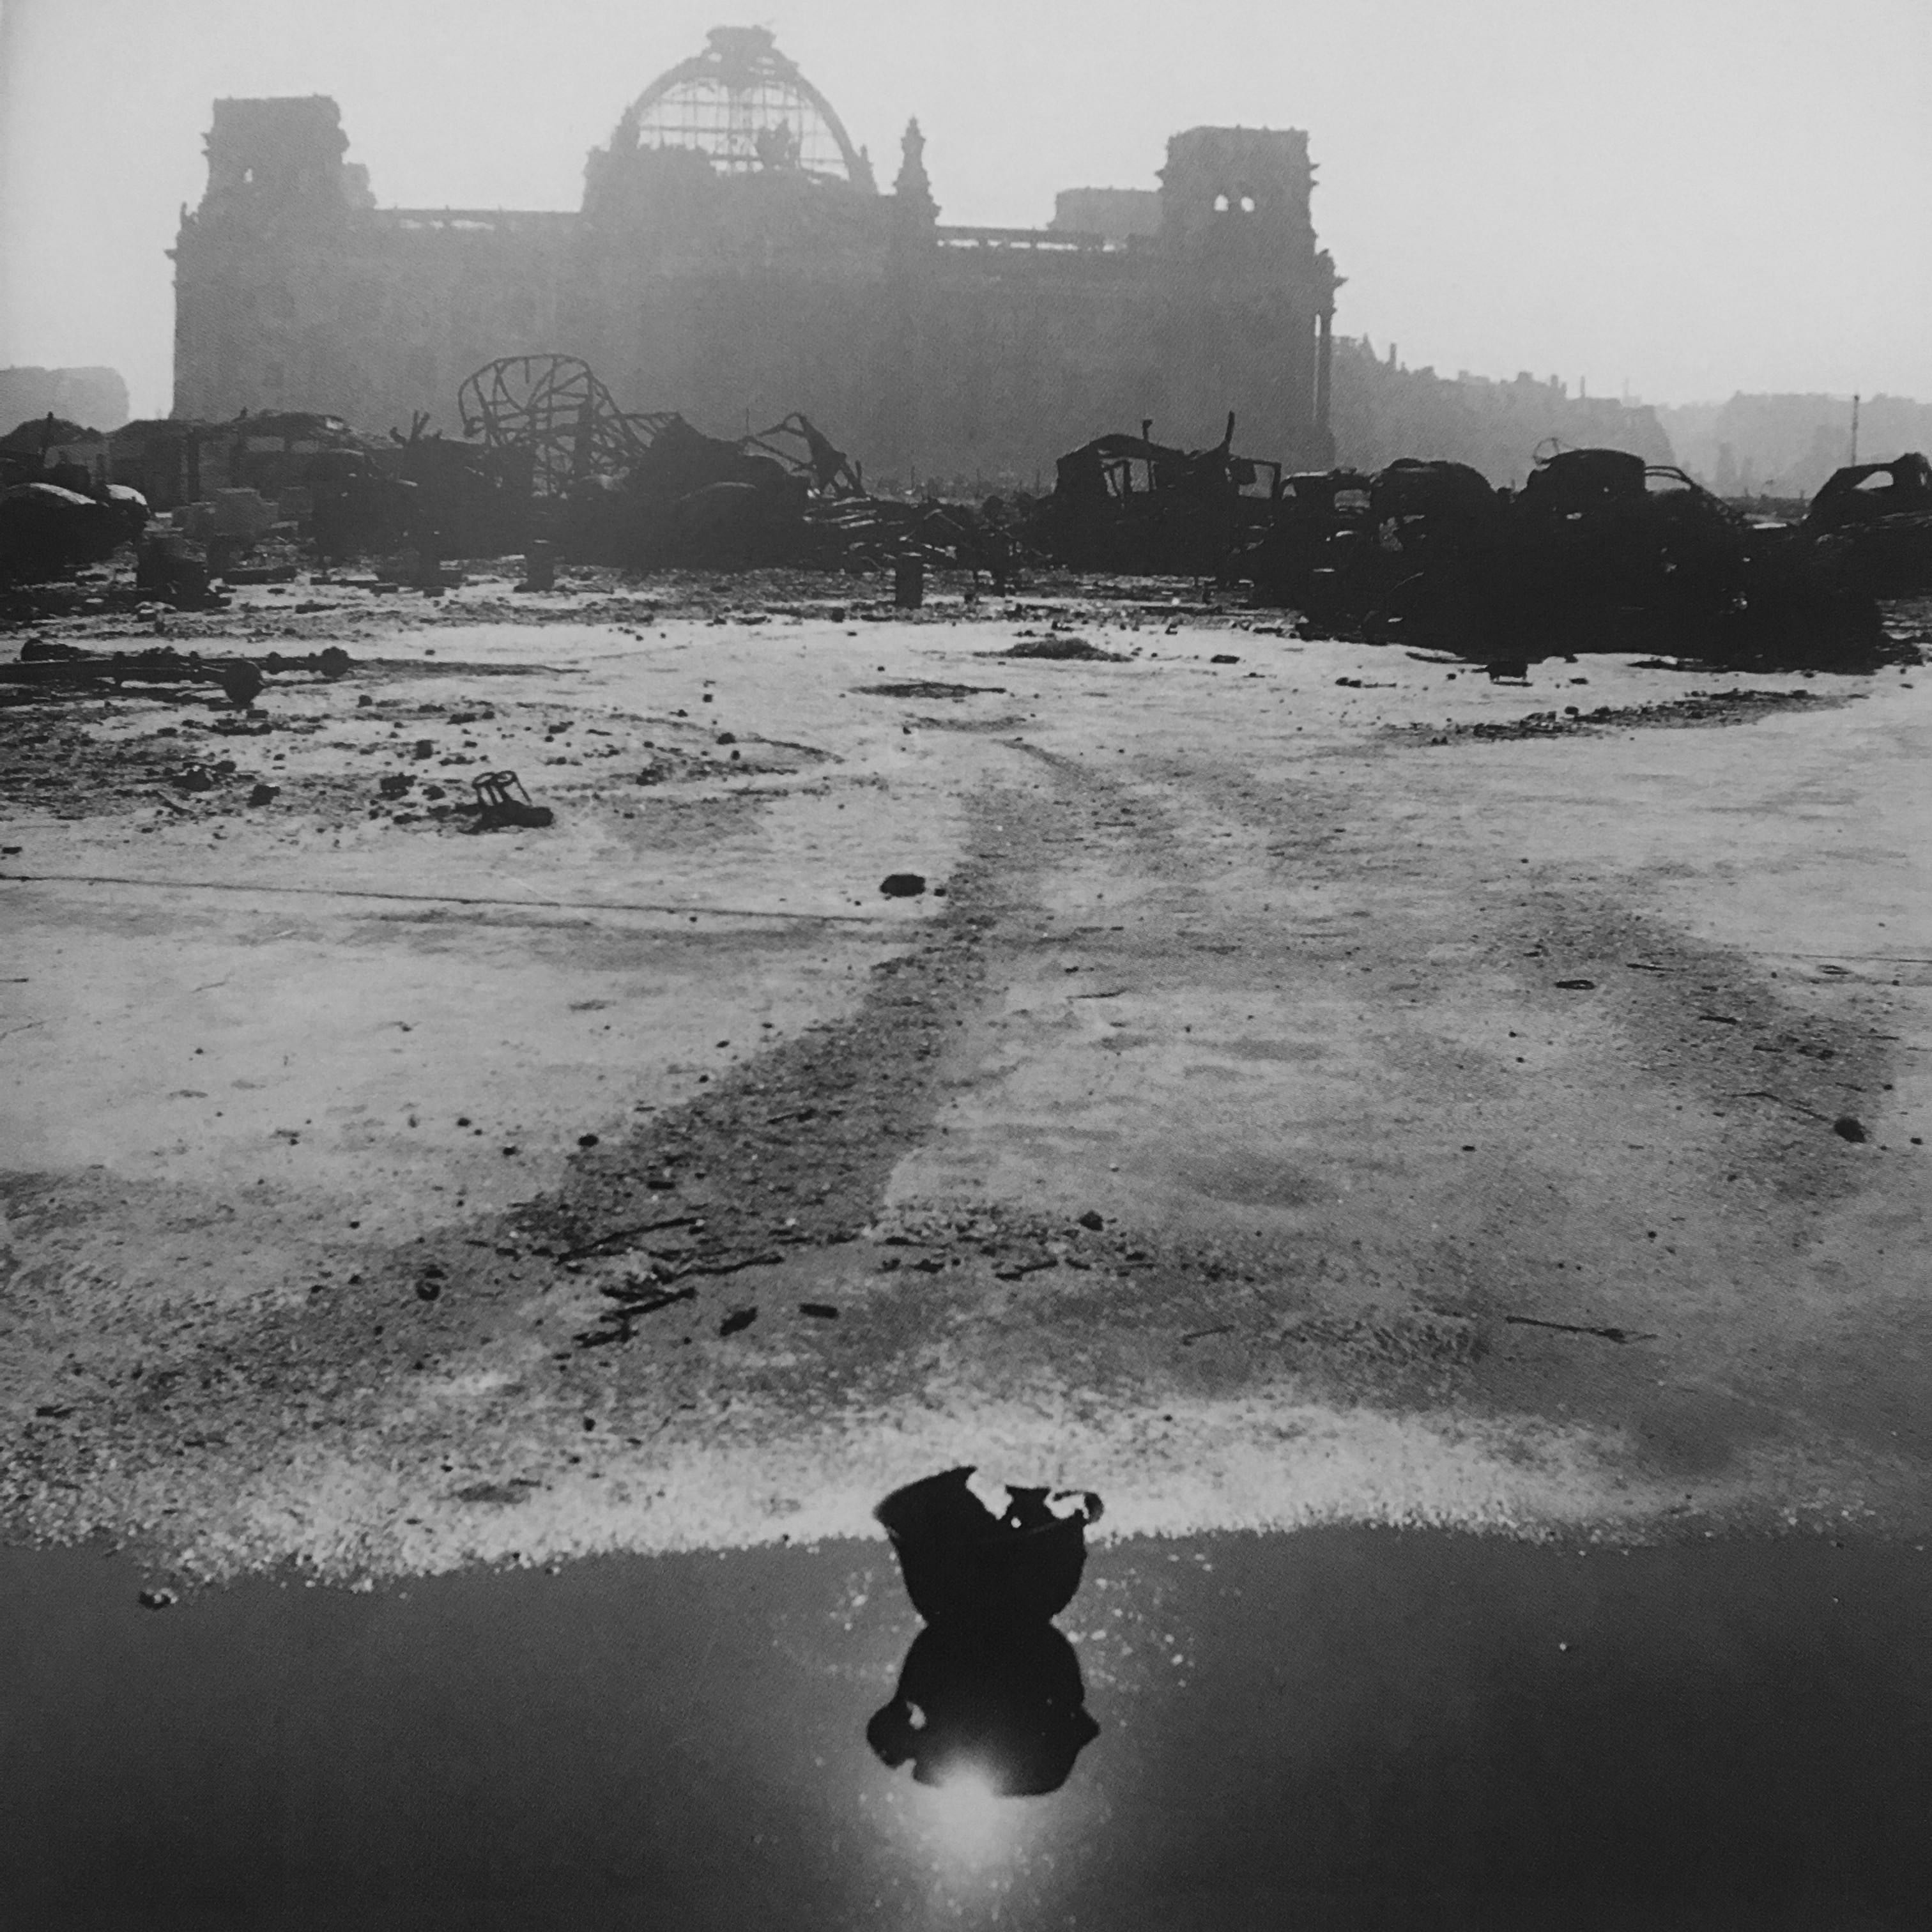 The Reichstag, Berlin, Germany, 1946.